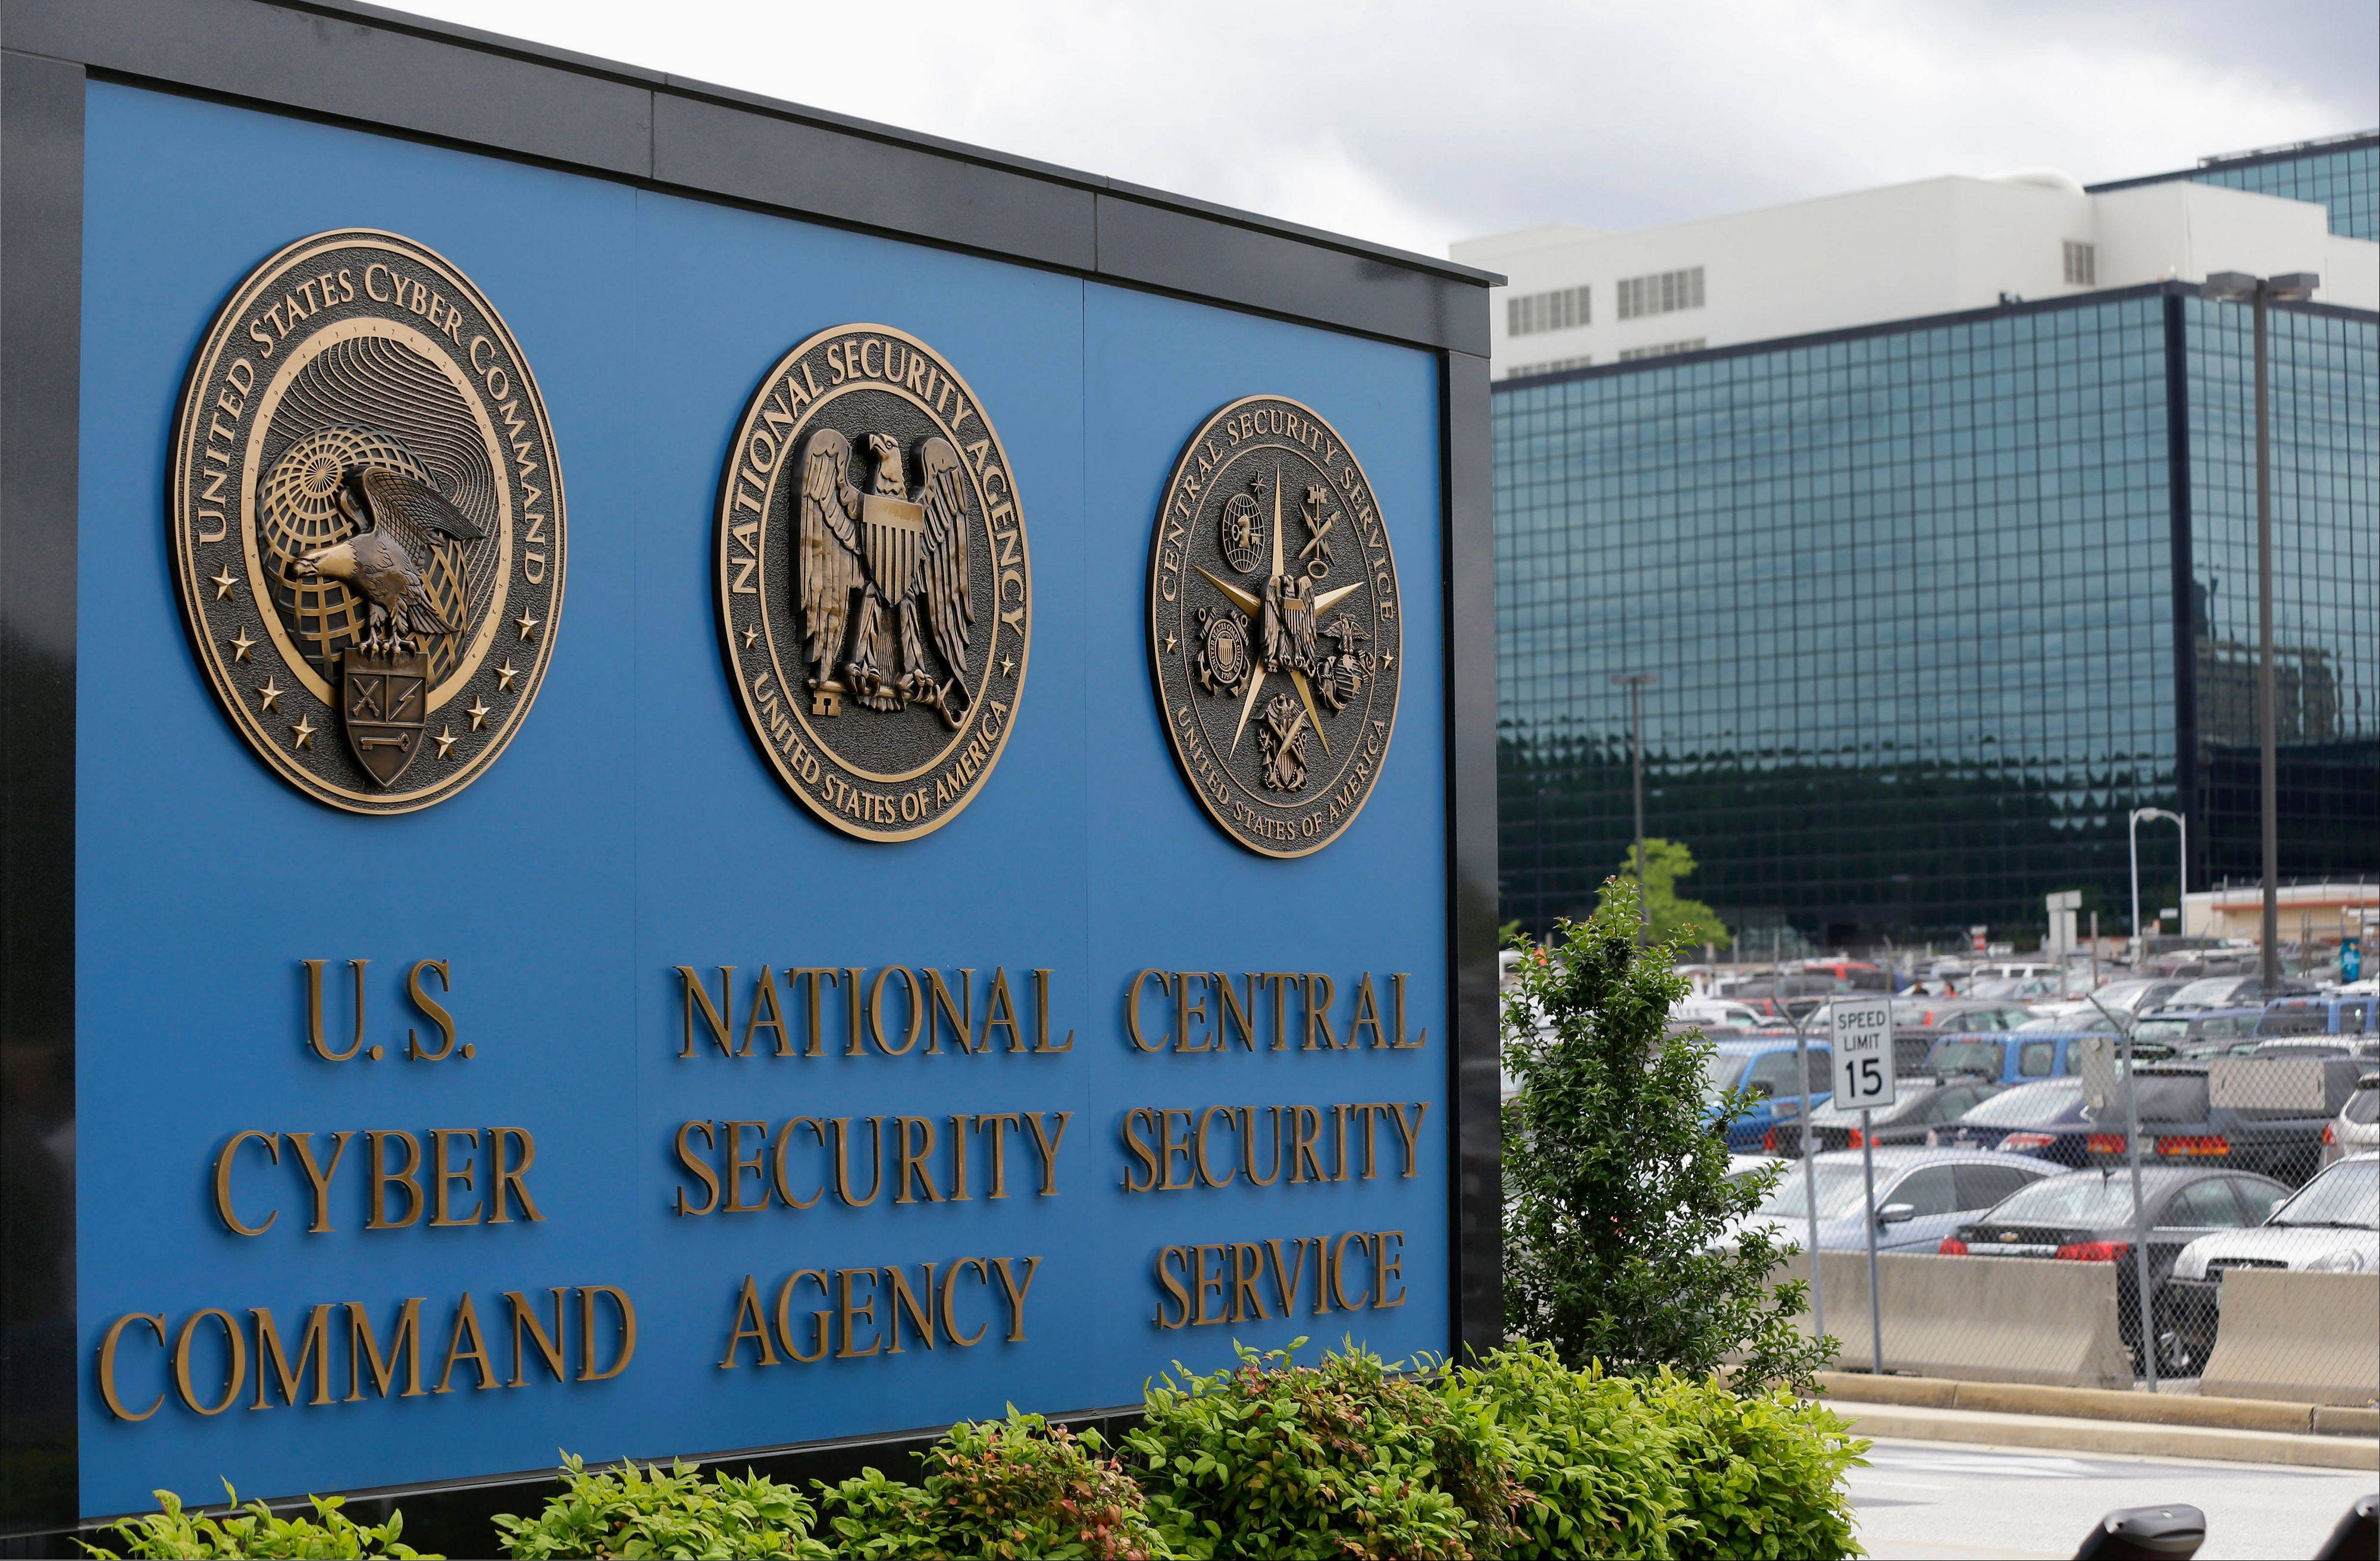 Telephone companies are quietly balking at the idea of changing how they collect and store Americans� phone records to help the NSA�s surveillance programs. They�re worried about their exposure to lawsuits and the price tag if the U.S. government asks them to hold information about customers for longer than they already do.